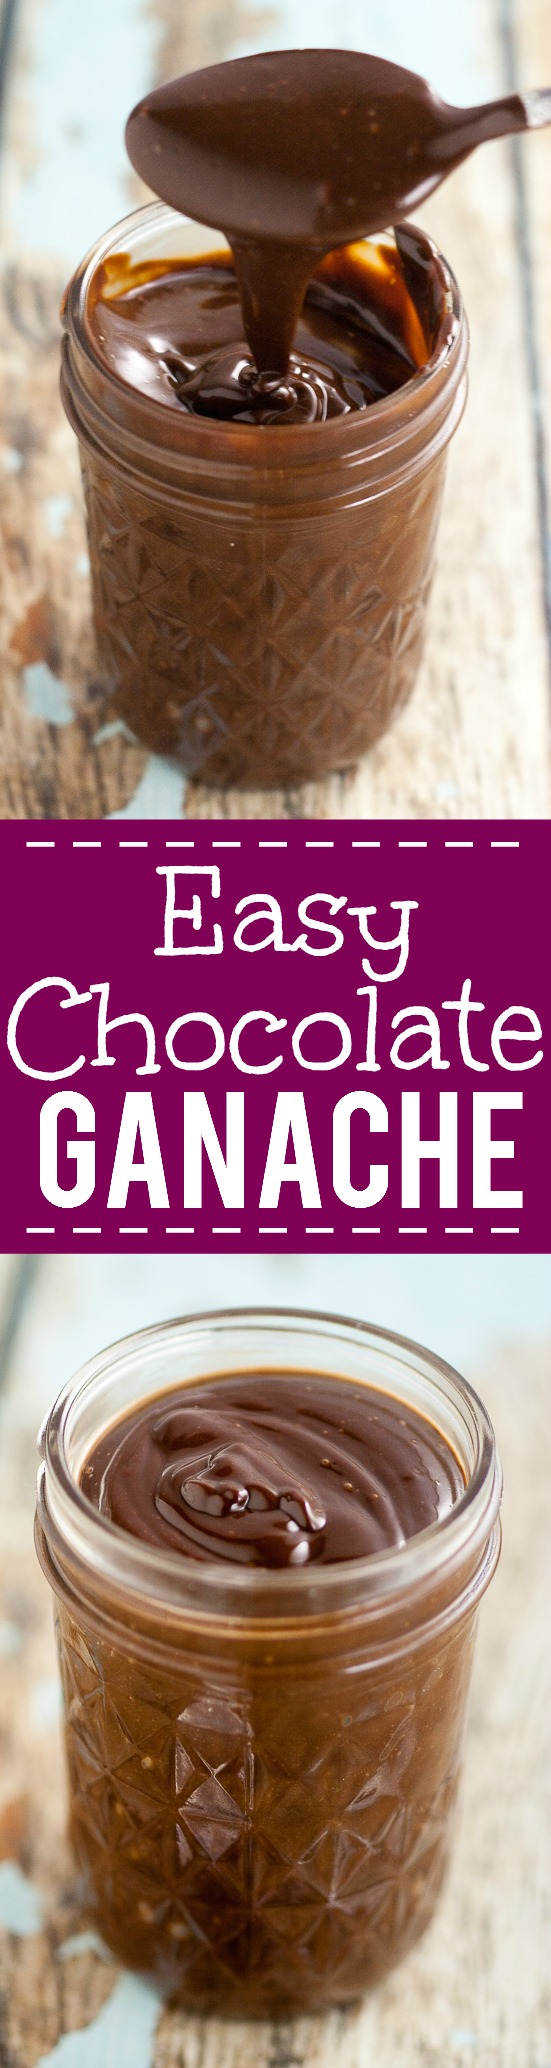 Easy Chocolate Ganache Recipe - Make this scrumptious and rich Easy Chocolate Ganache recipe with just 3 ingredients in 15 minutes! Perfect for cupcakes, cake filling, truffles, and more! A must have recipe for all chocolate lovers!